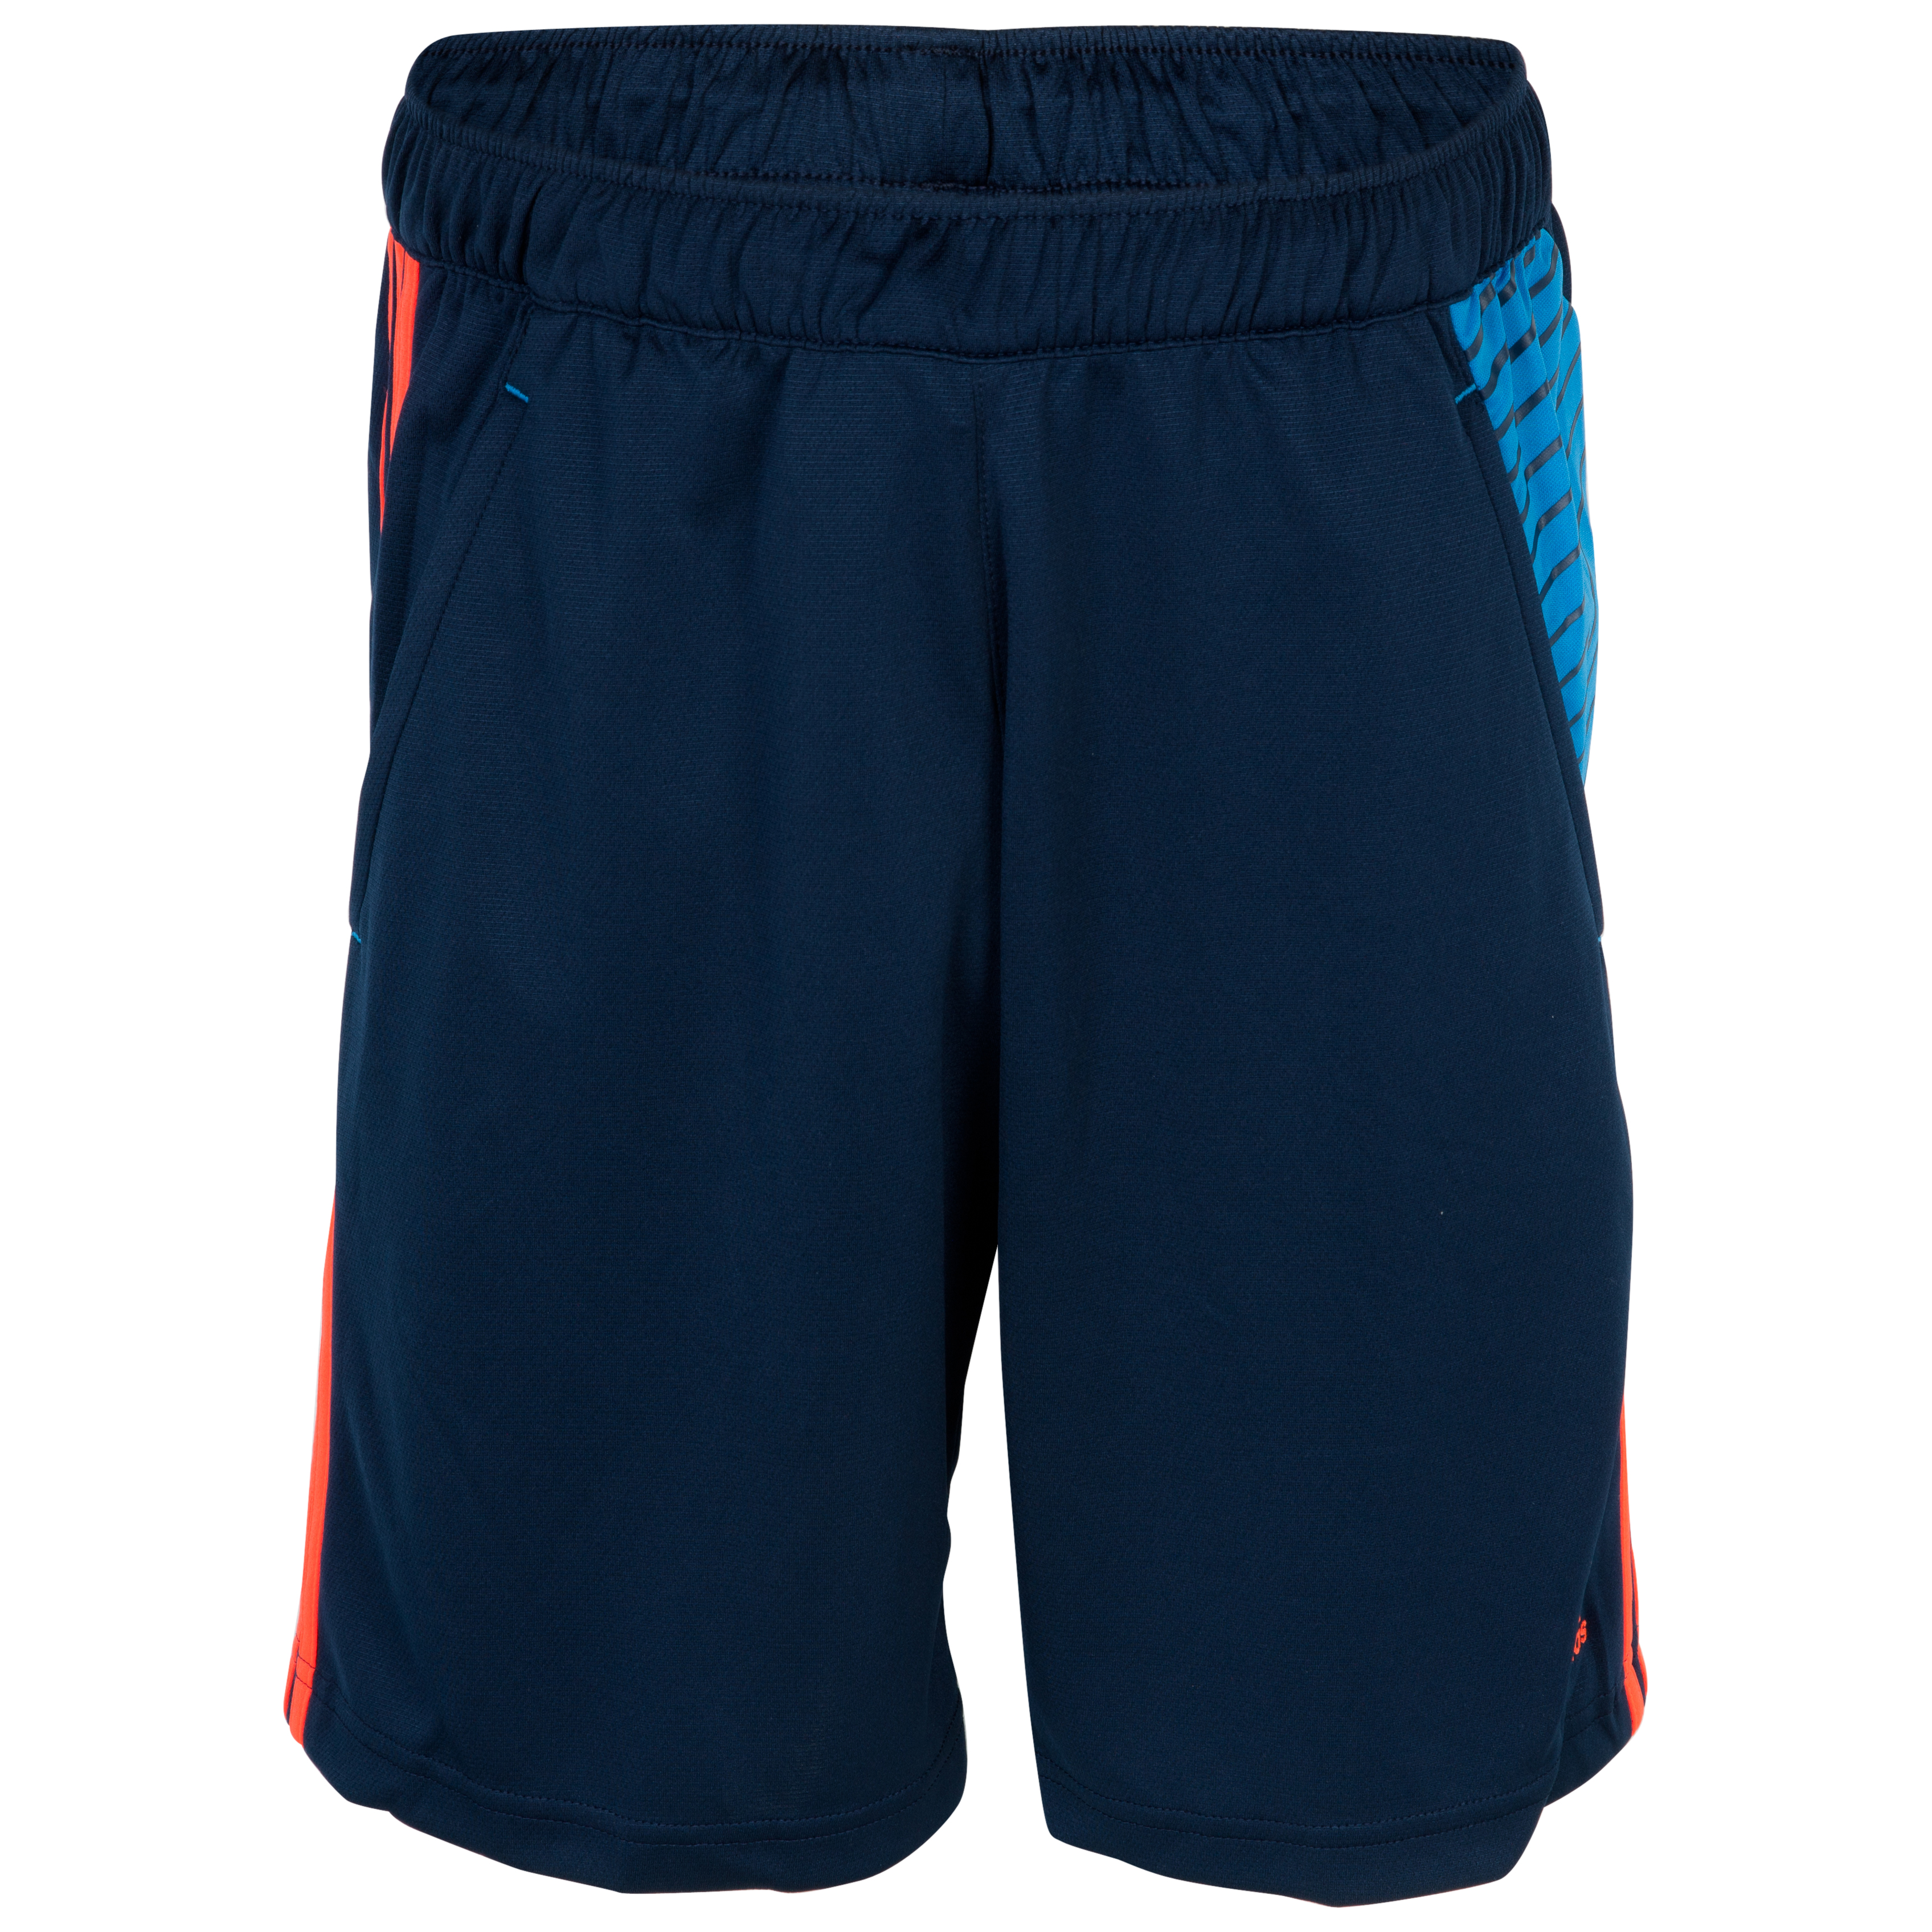 Adidas Predator Training Short - College Navy/Infrared